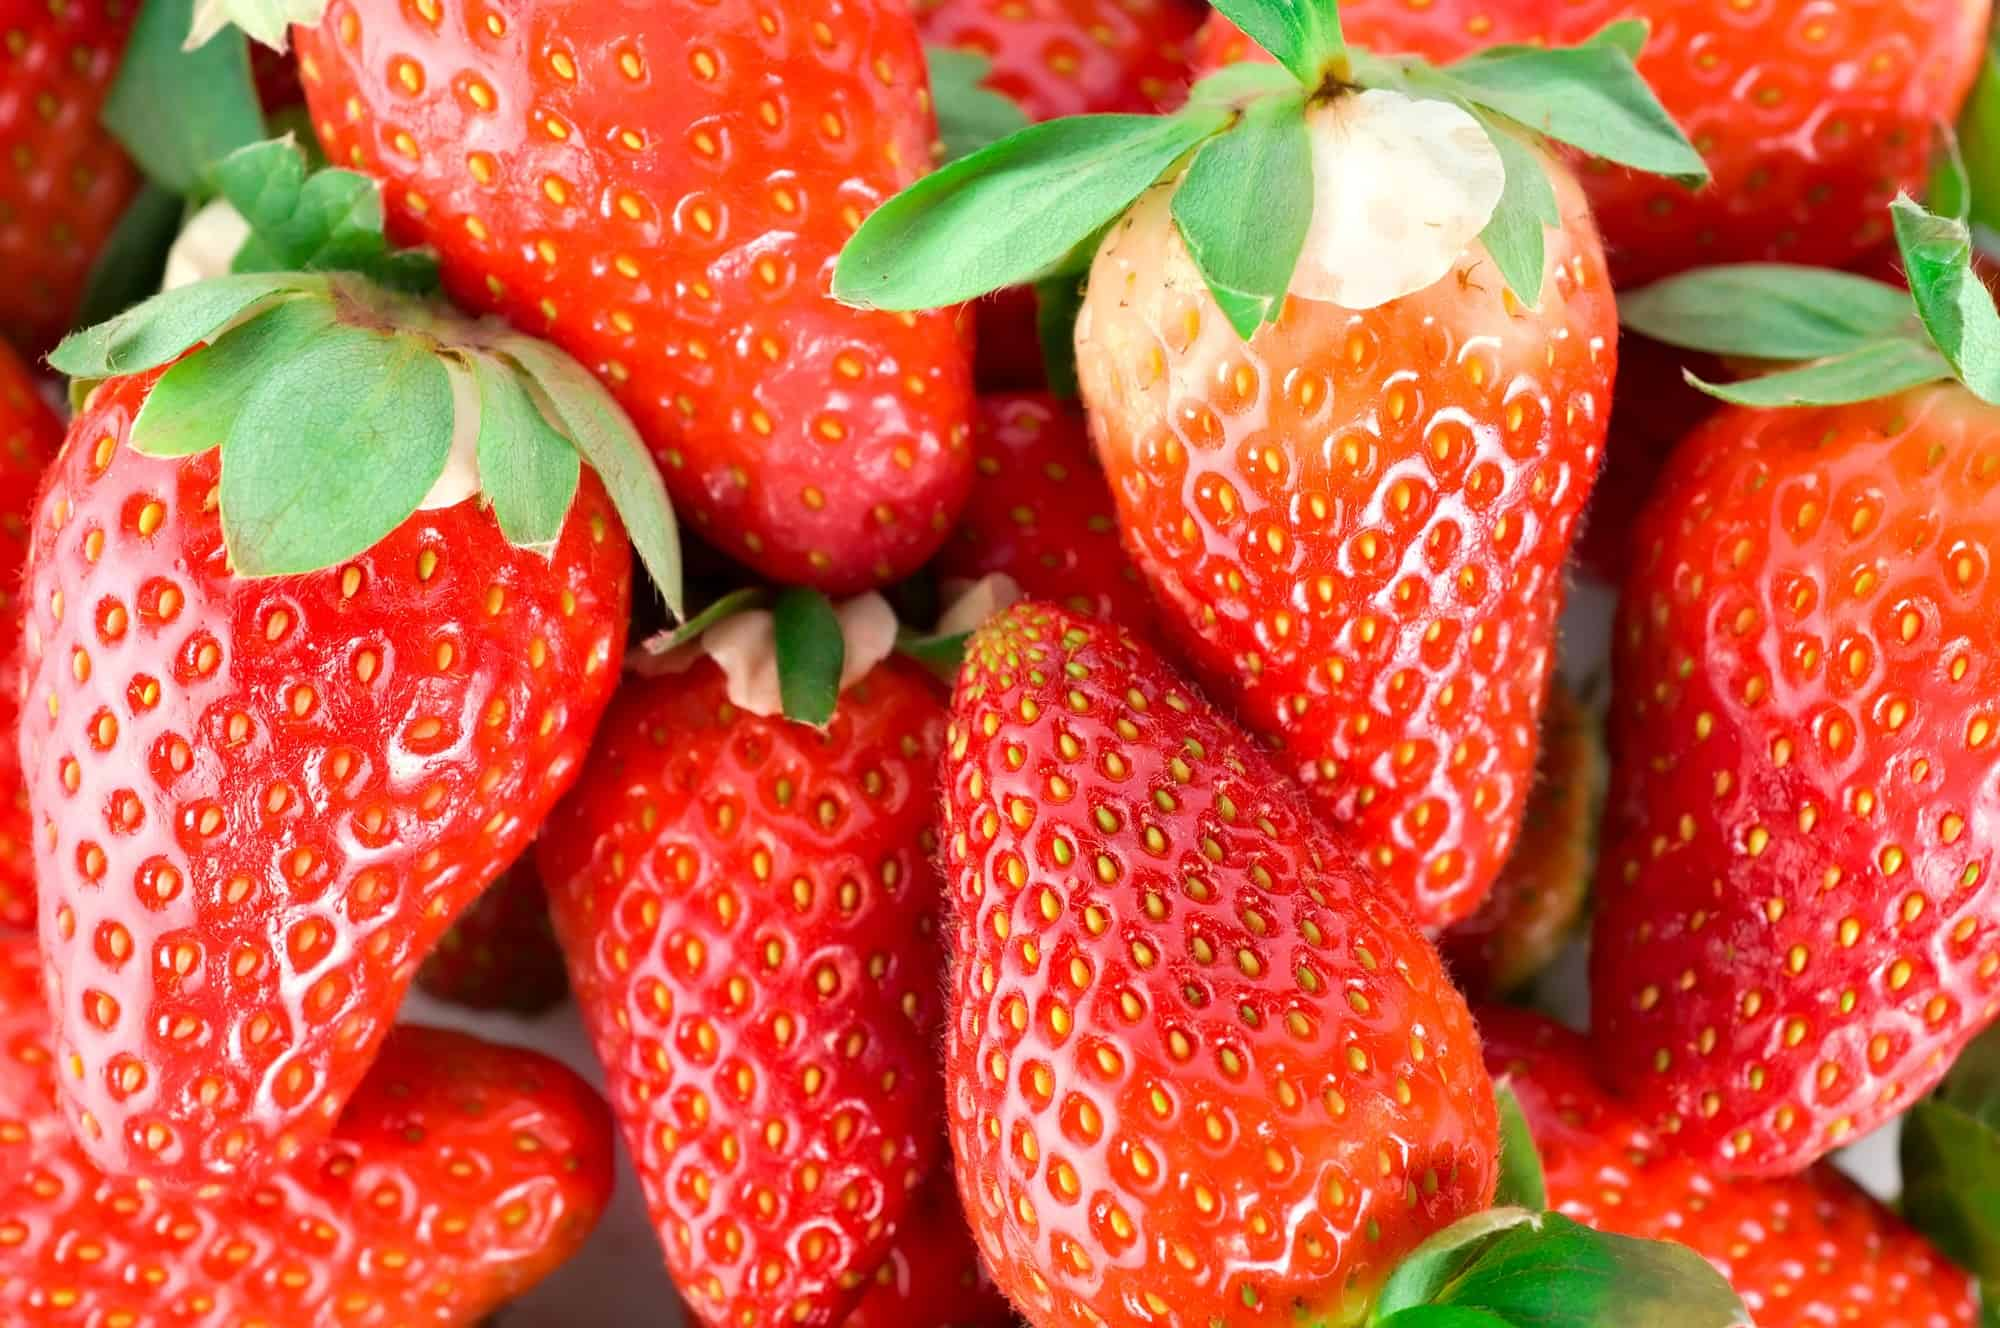 Mouthwatering strawberries